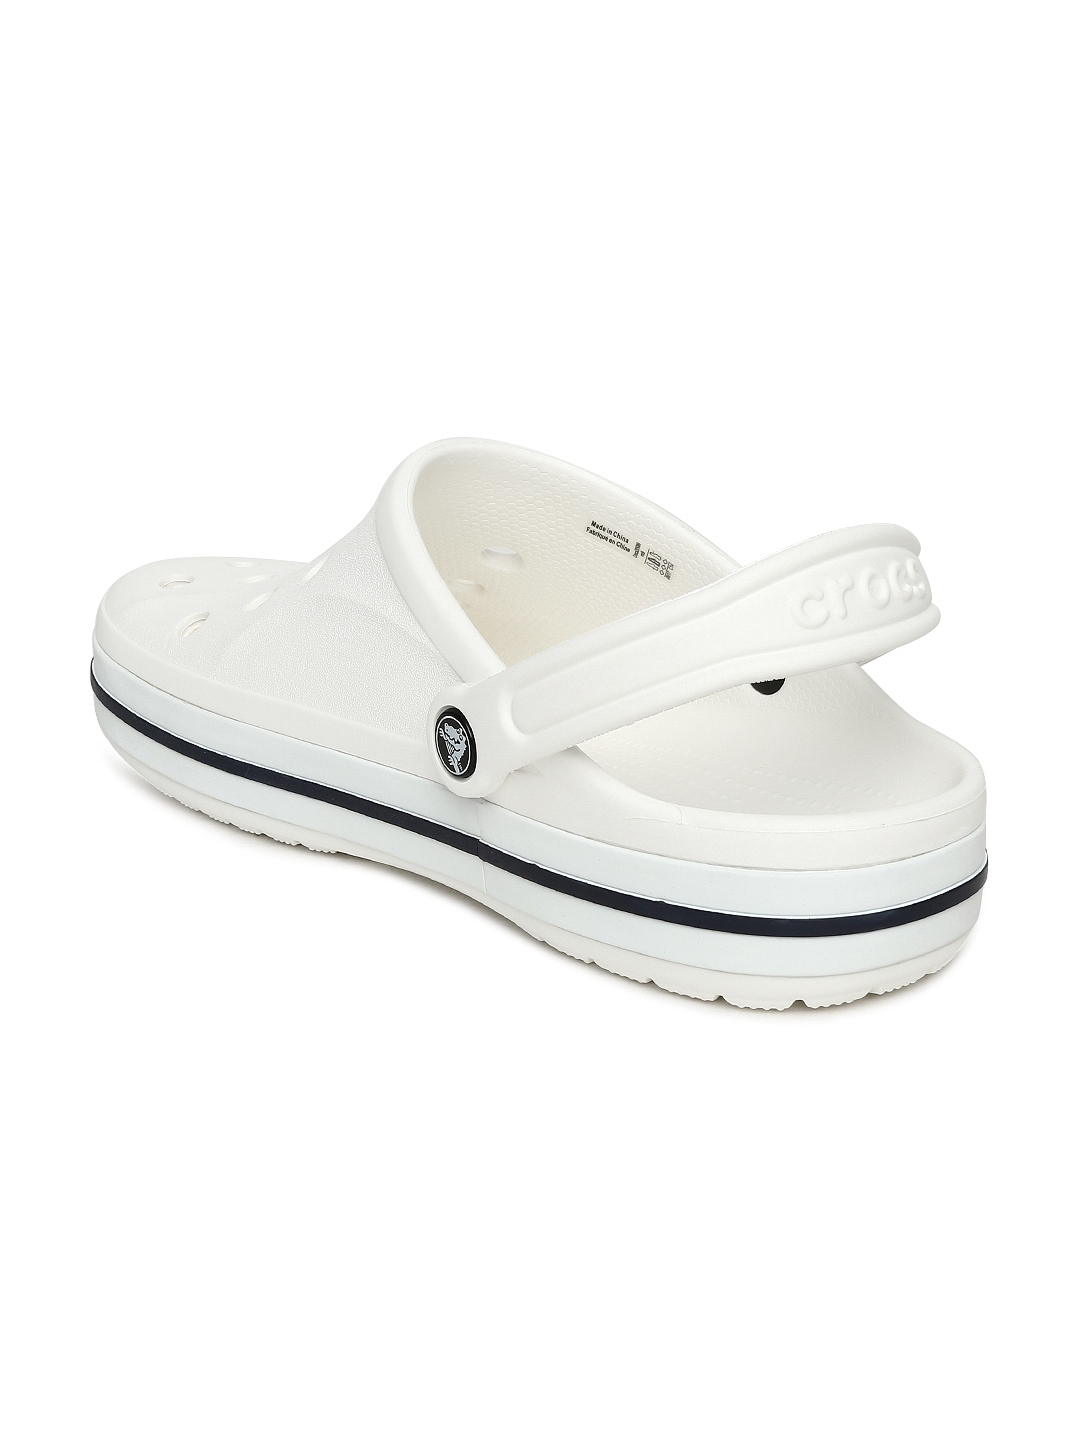 69ef5360b883 Buy Crocs Unisex White Bayaband Clogs - Flip Flops for Unisex ...